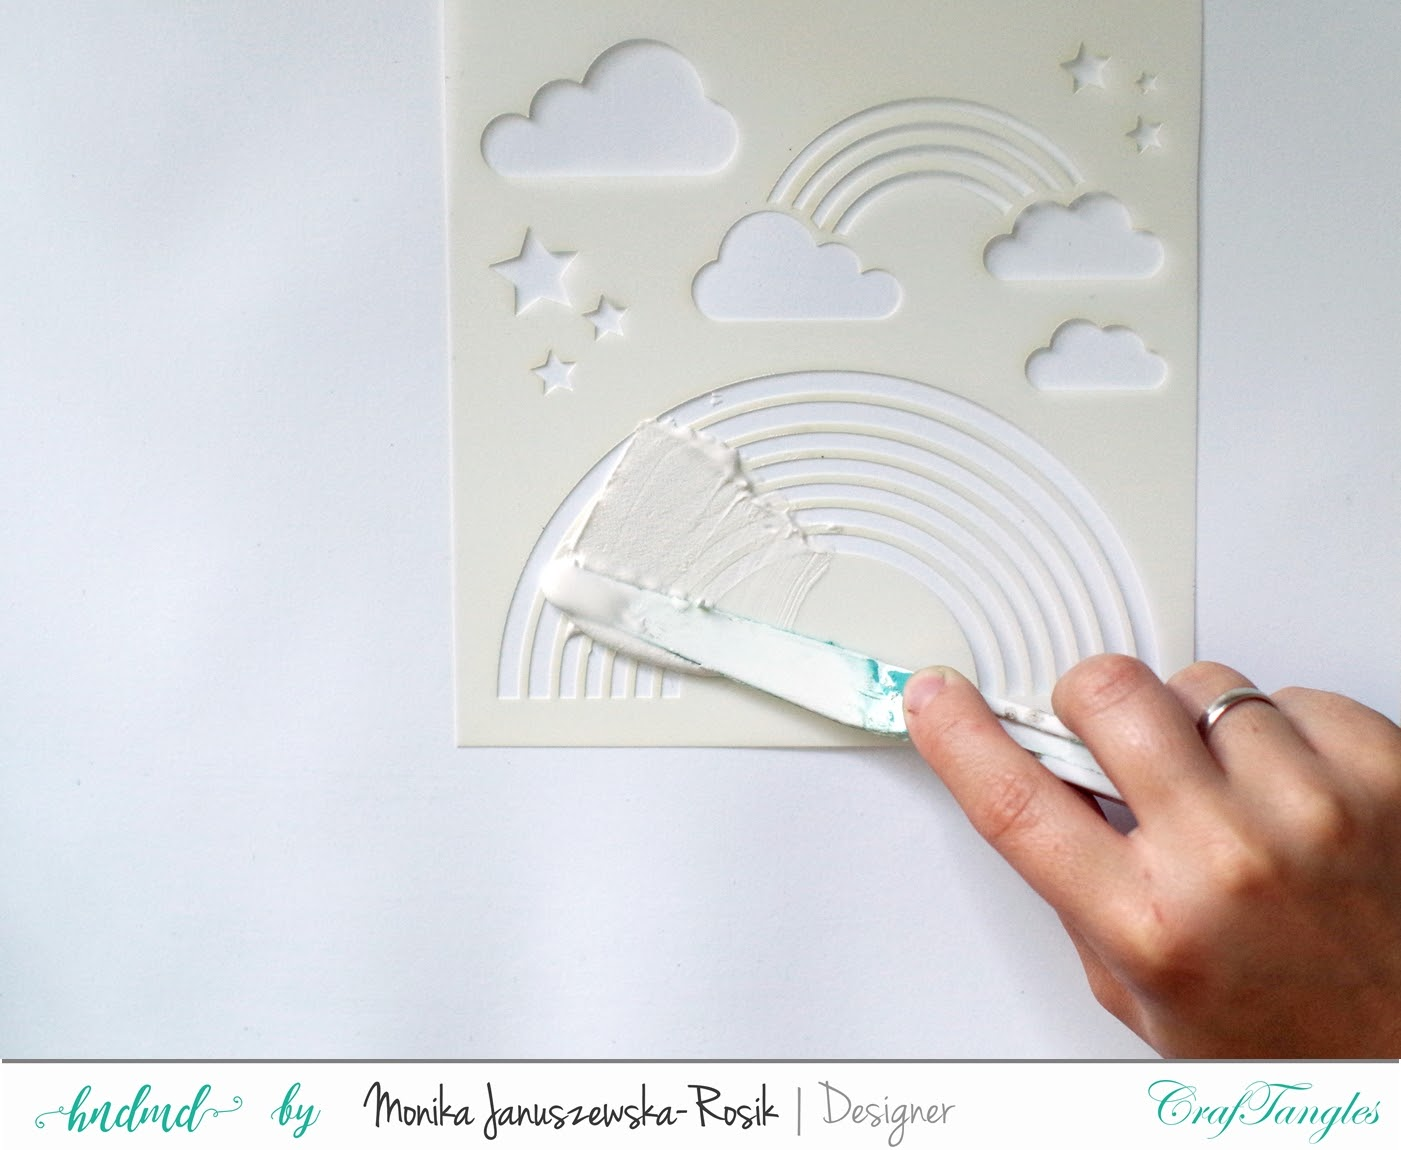 Mixed media Layout with CrafTangels stencils 6